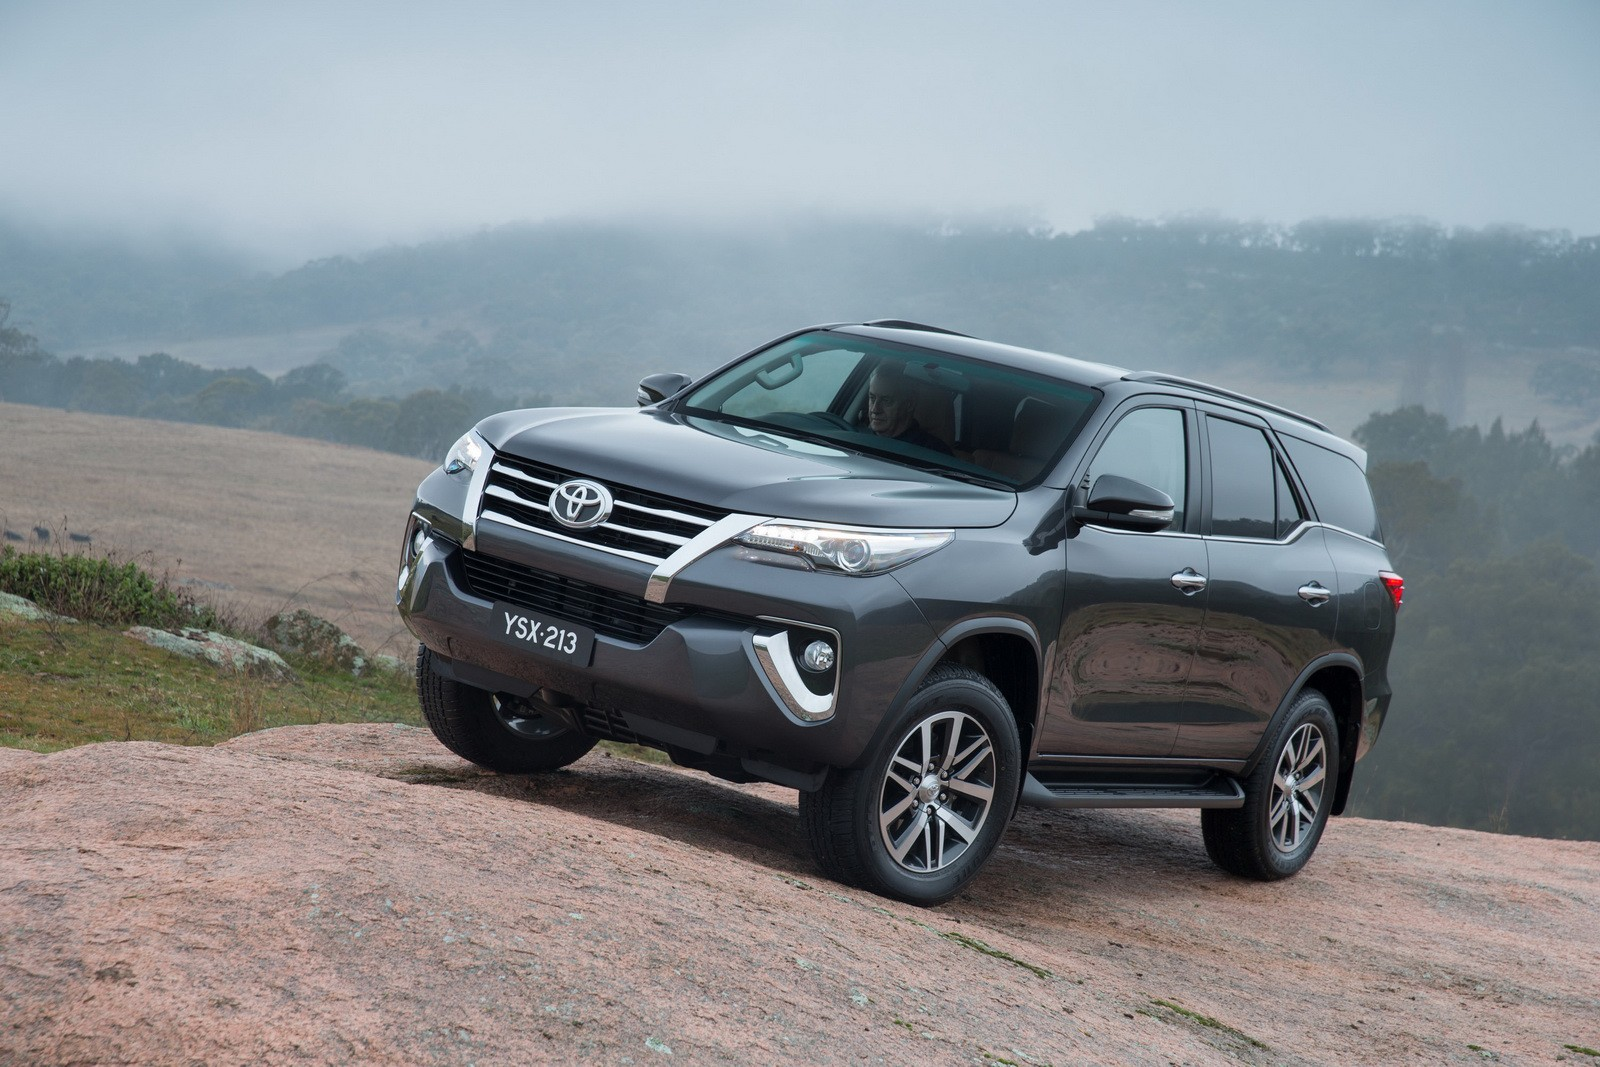 Toyota Prado 2019 New Model >> 2016 Toyota Fortuner Debuts in Australia and Thailand with 177 HP 2.8 Mill - autoevolution